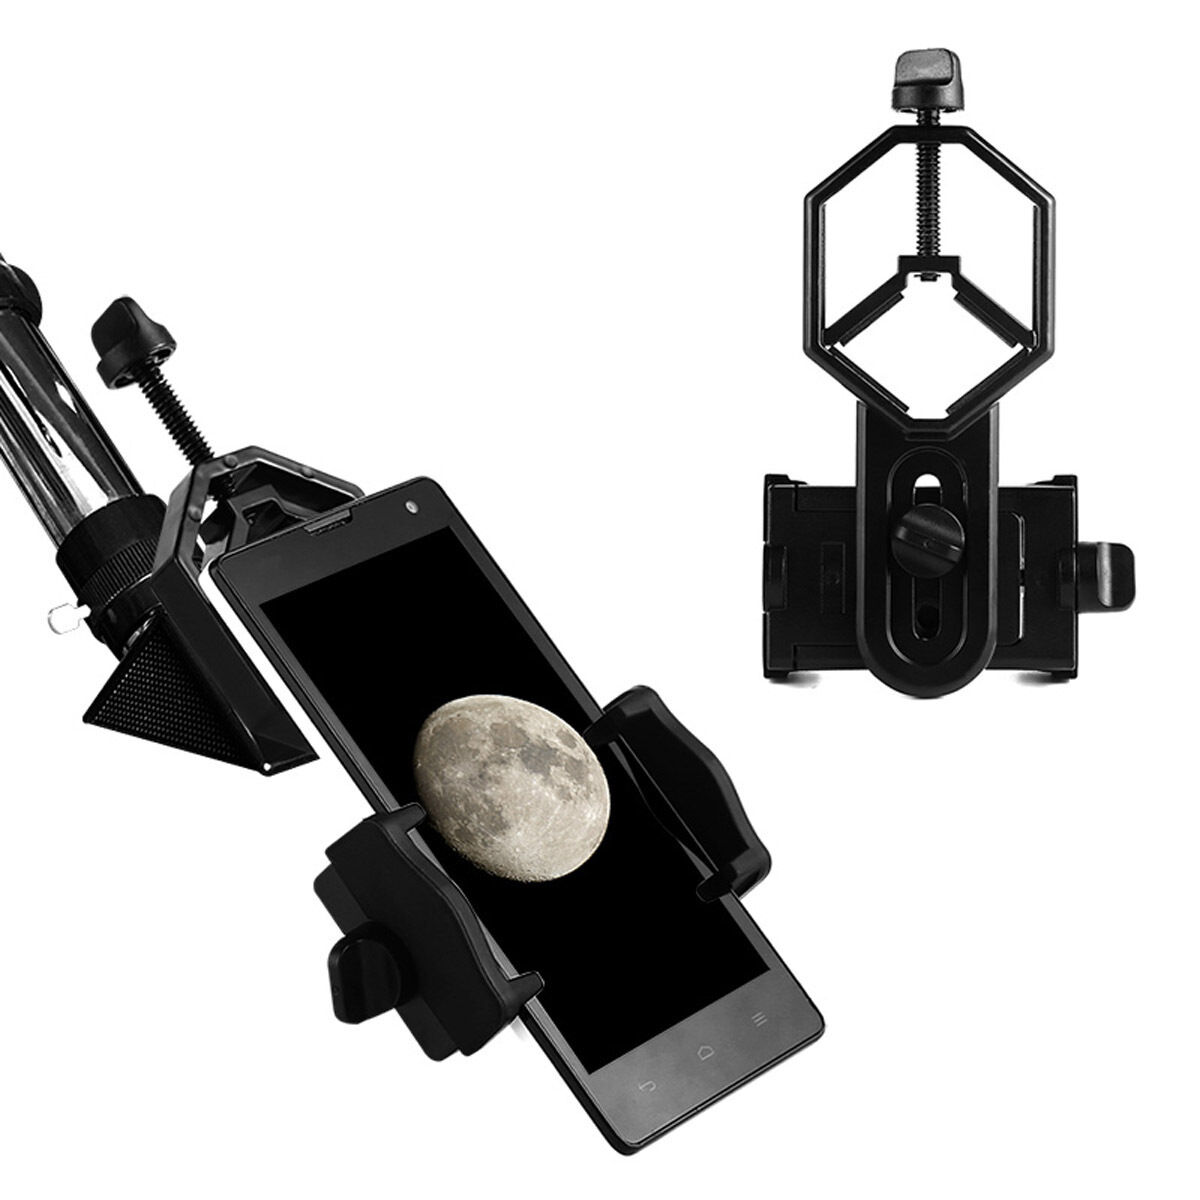 New SV14 Scope+Tripod+Cellphone FMC 20-60x60mm 45° Angled Zoom Spotting Scope+Tripod+Cellphone SV14 Adapter! e16510